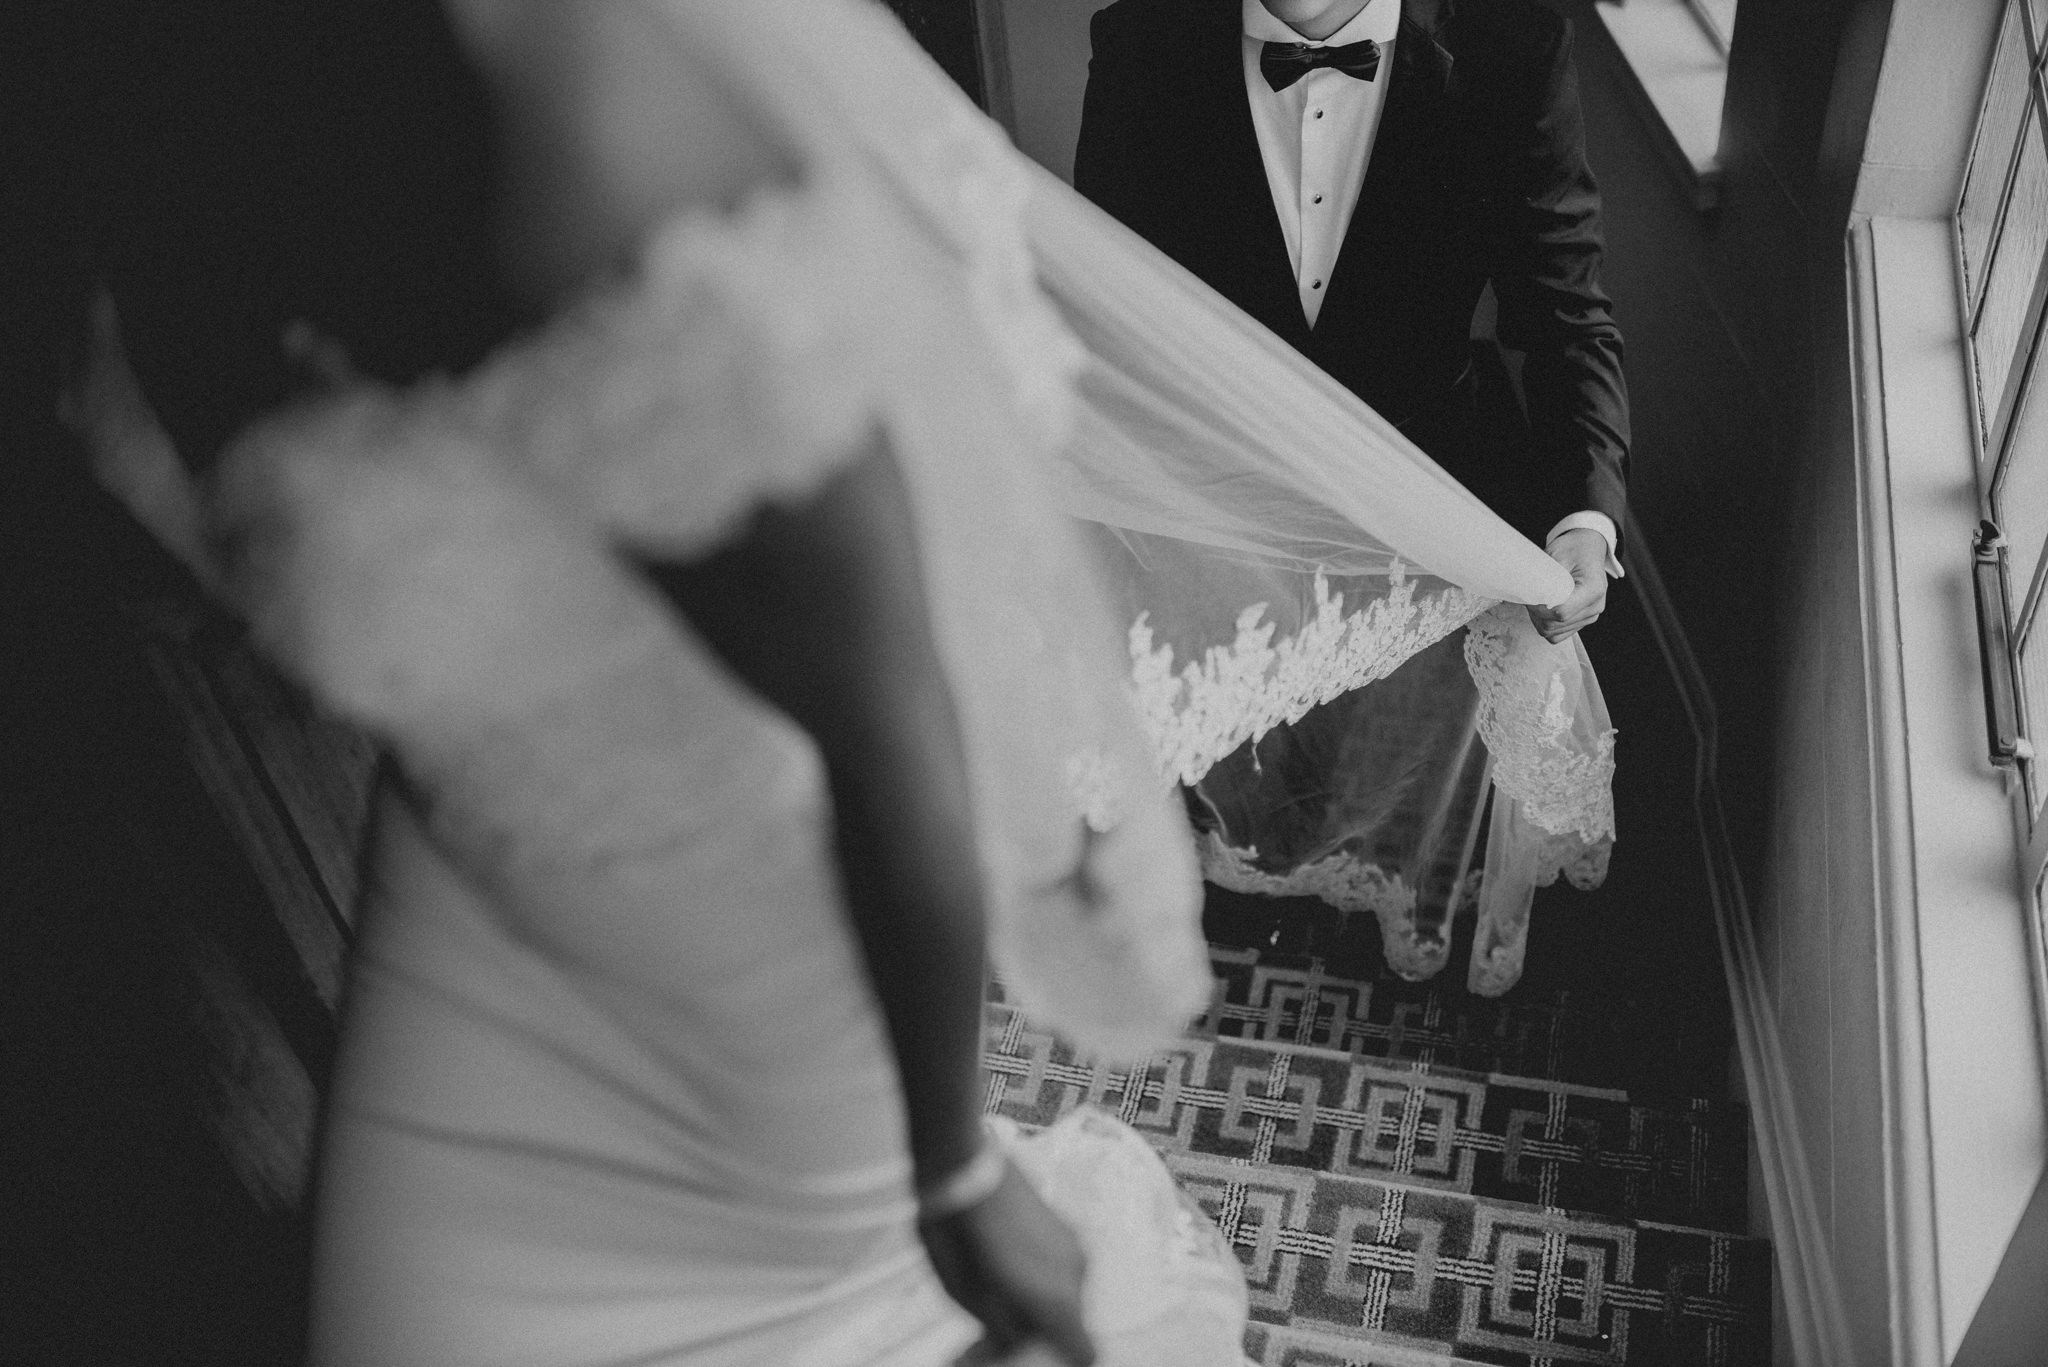 Groom holding his bride's wedding veil as she walks up stairs